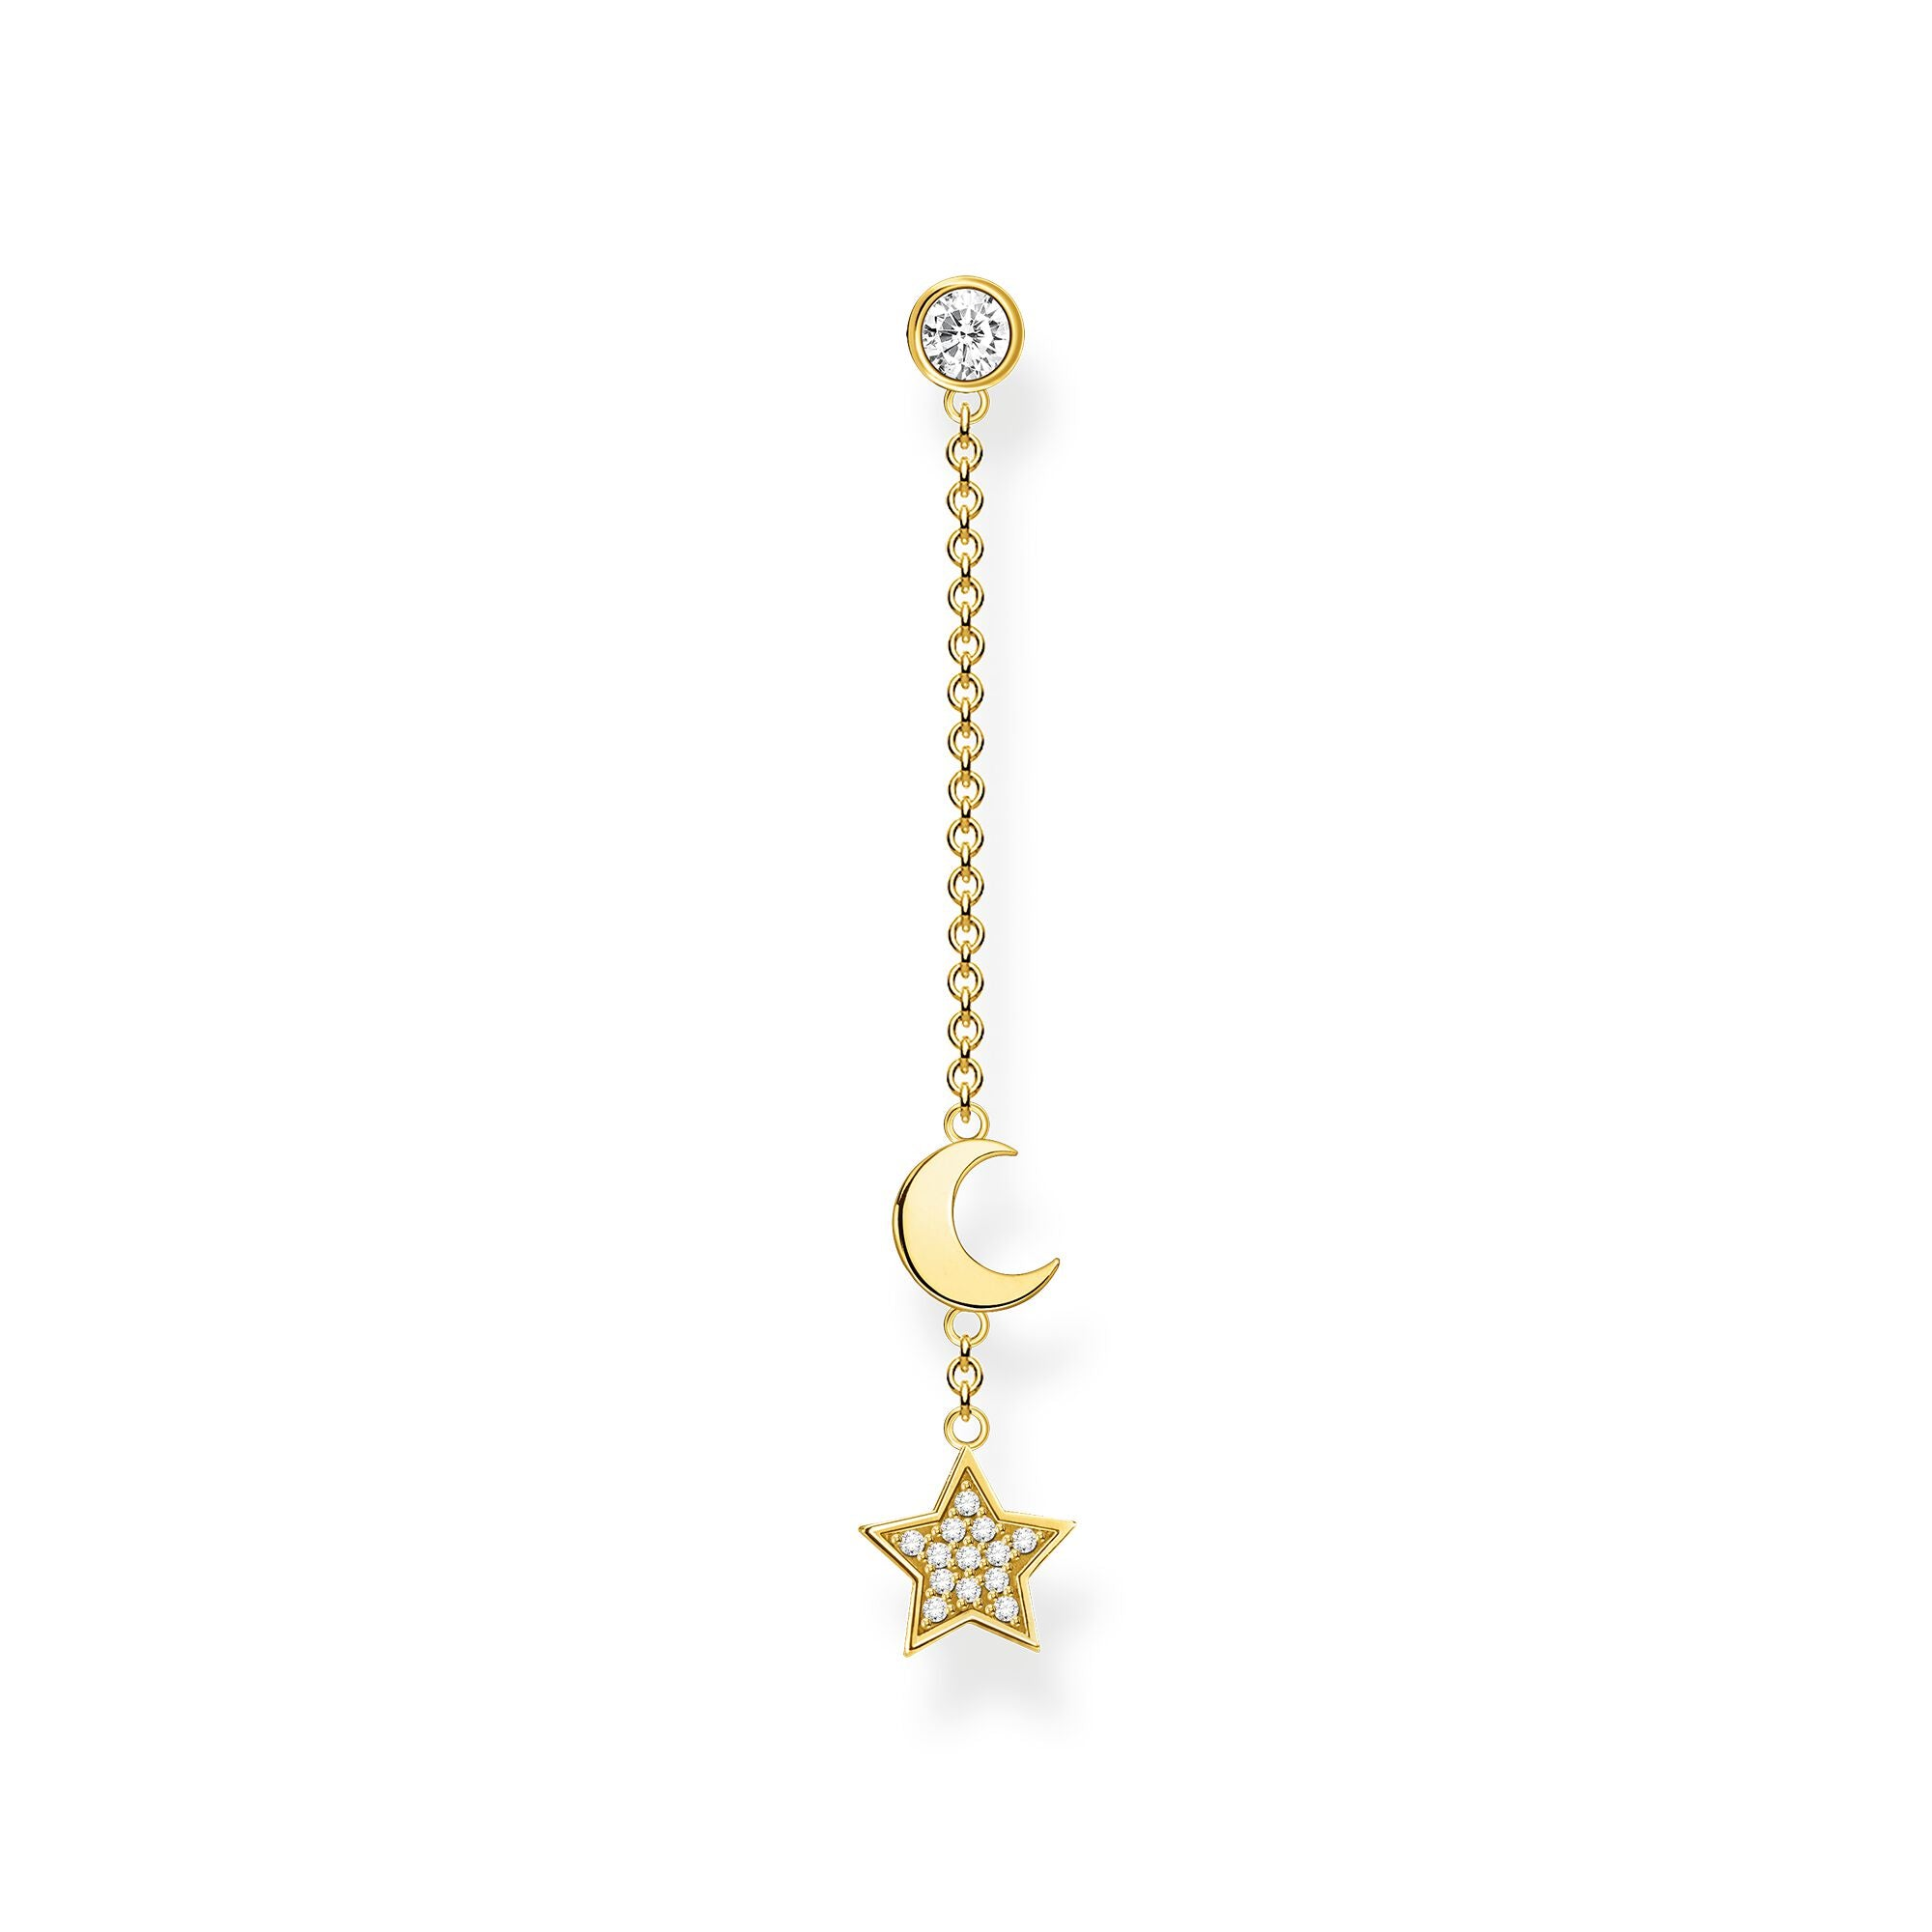 Thomas Sabo, Sterling Silver, Yellow Gold Plated, Cubic Zirconia, Moon & Star, Dangle, Chain, Single Stud Earring, Push backing, Ottawa